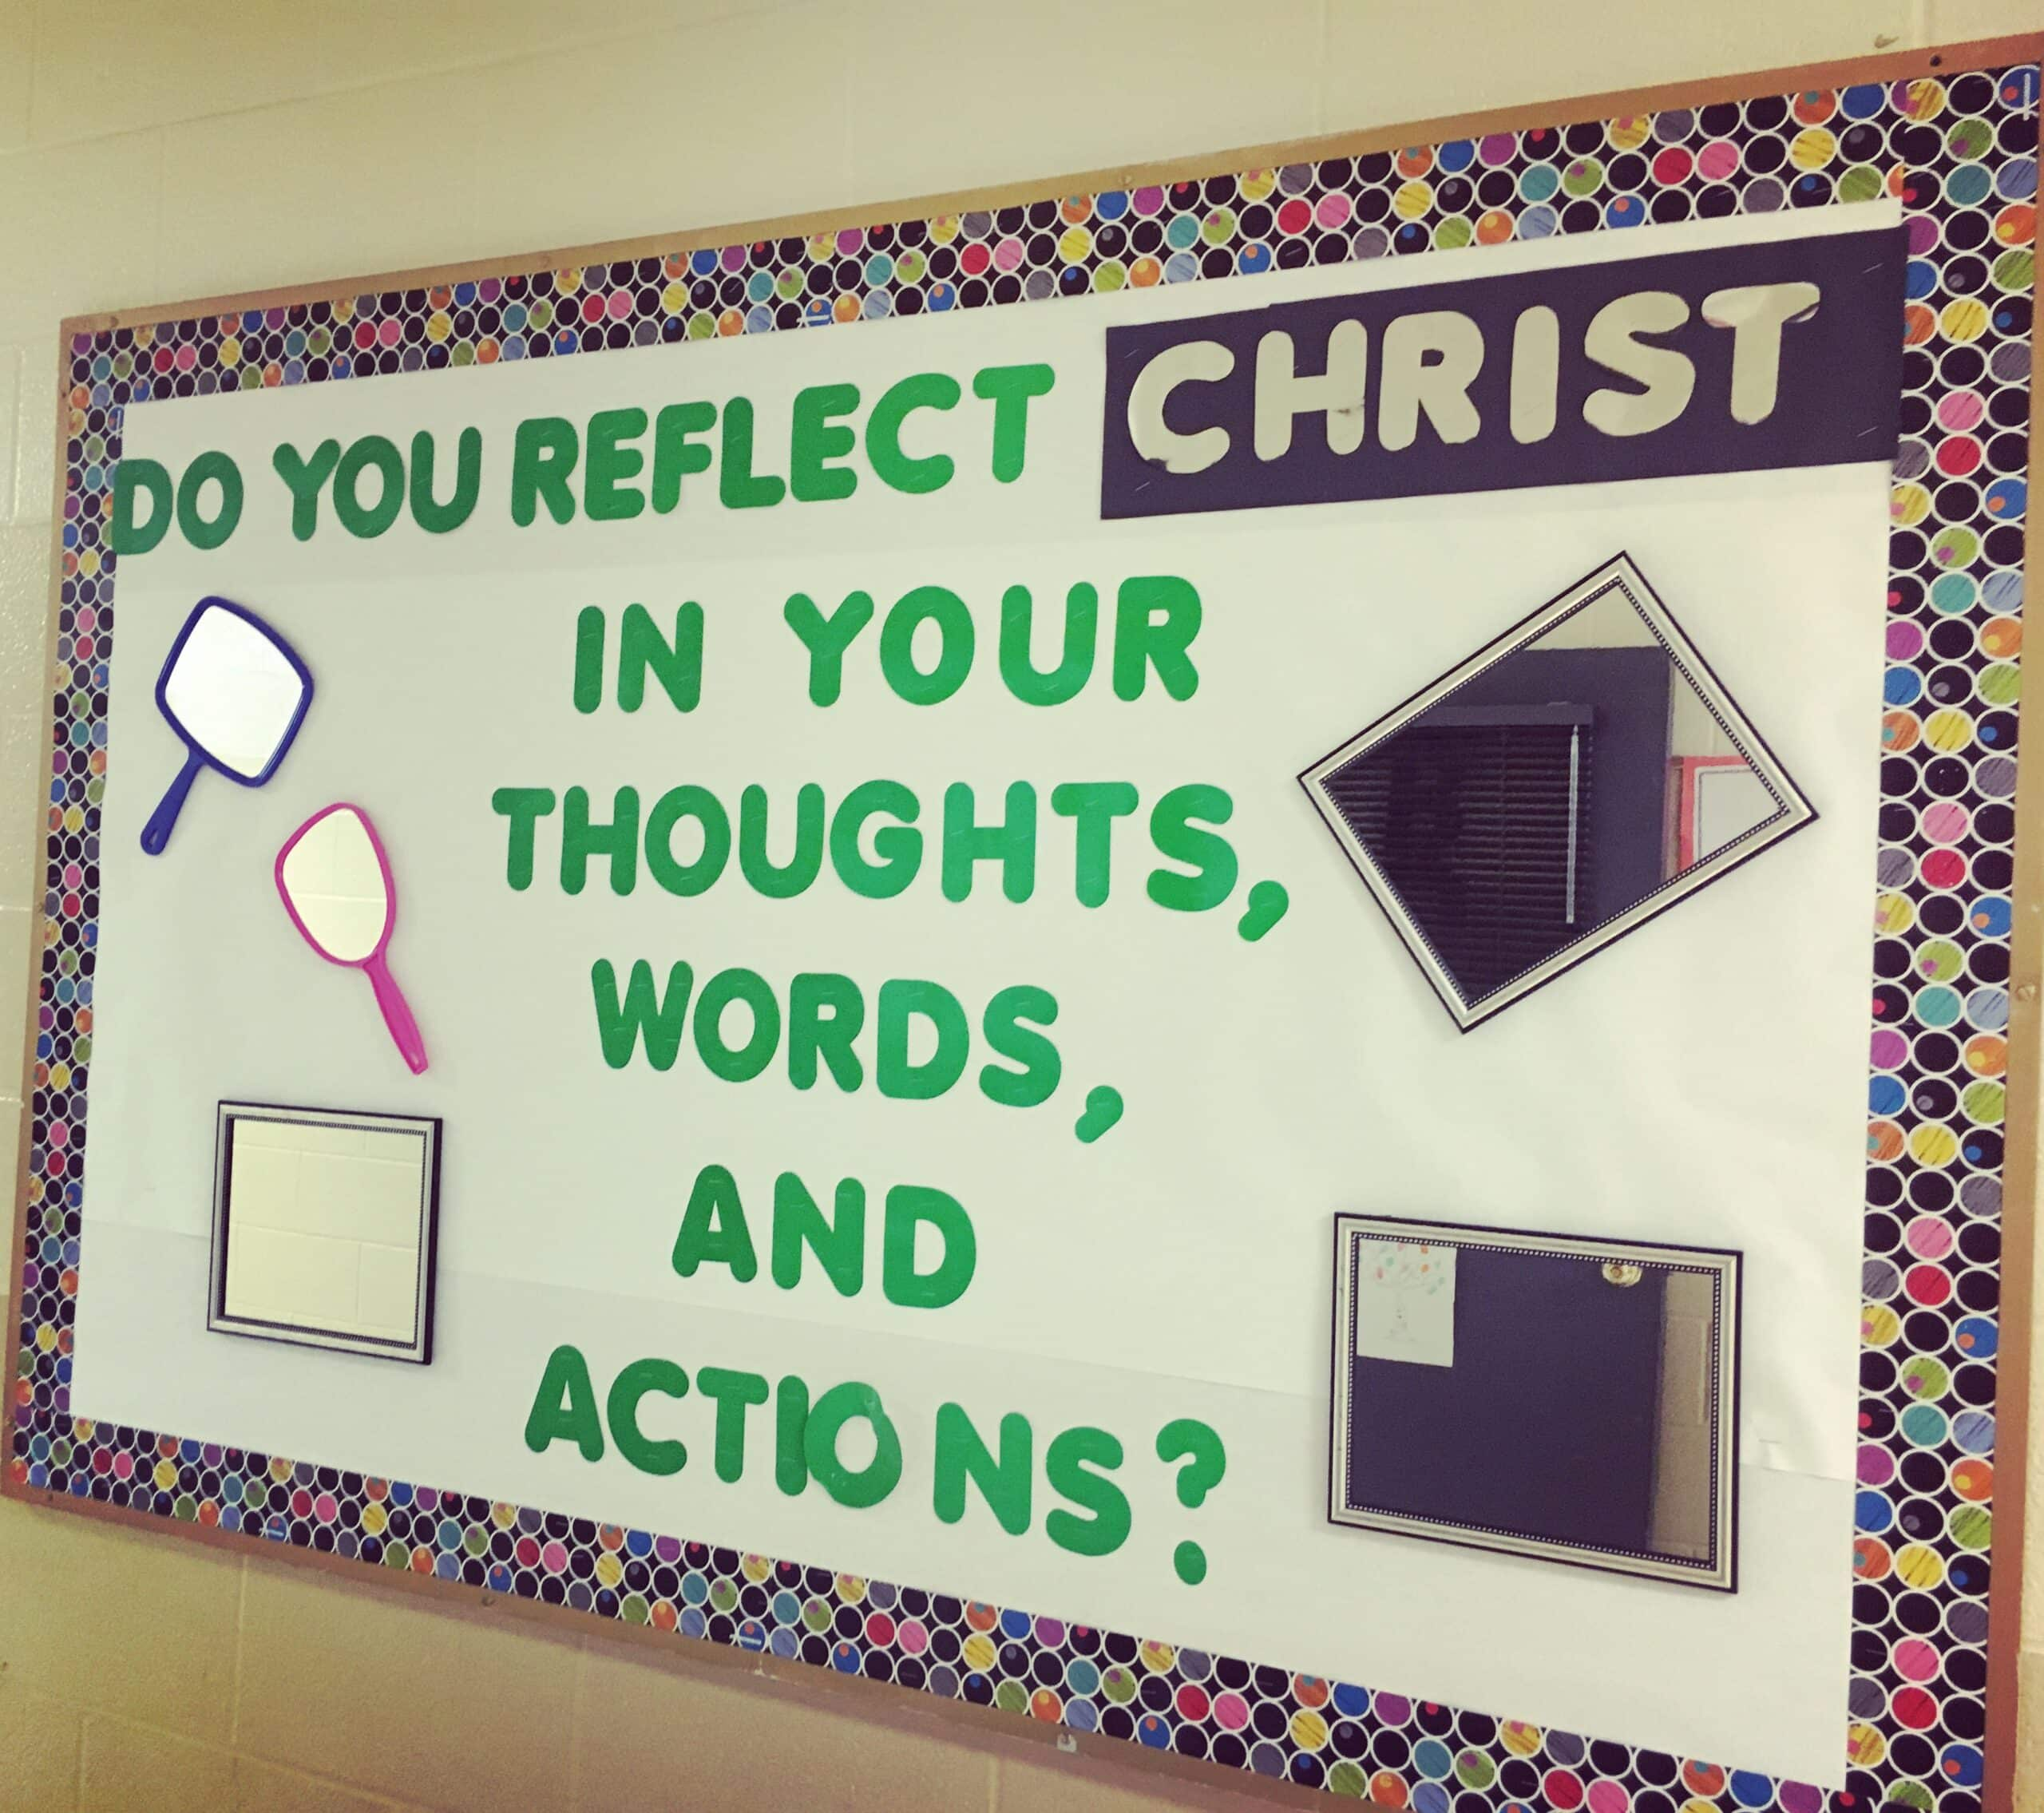 This parochial themed bulletin board is perfect for reminding students that they are responsible for their own actions and thoughts. #parochial #schoolbulletinboards